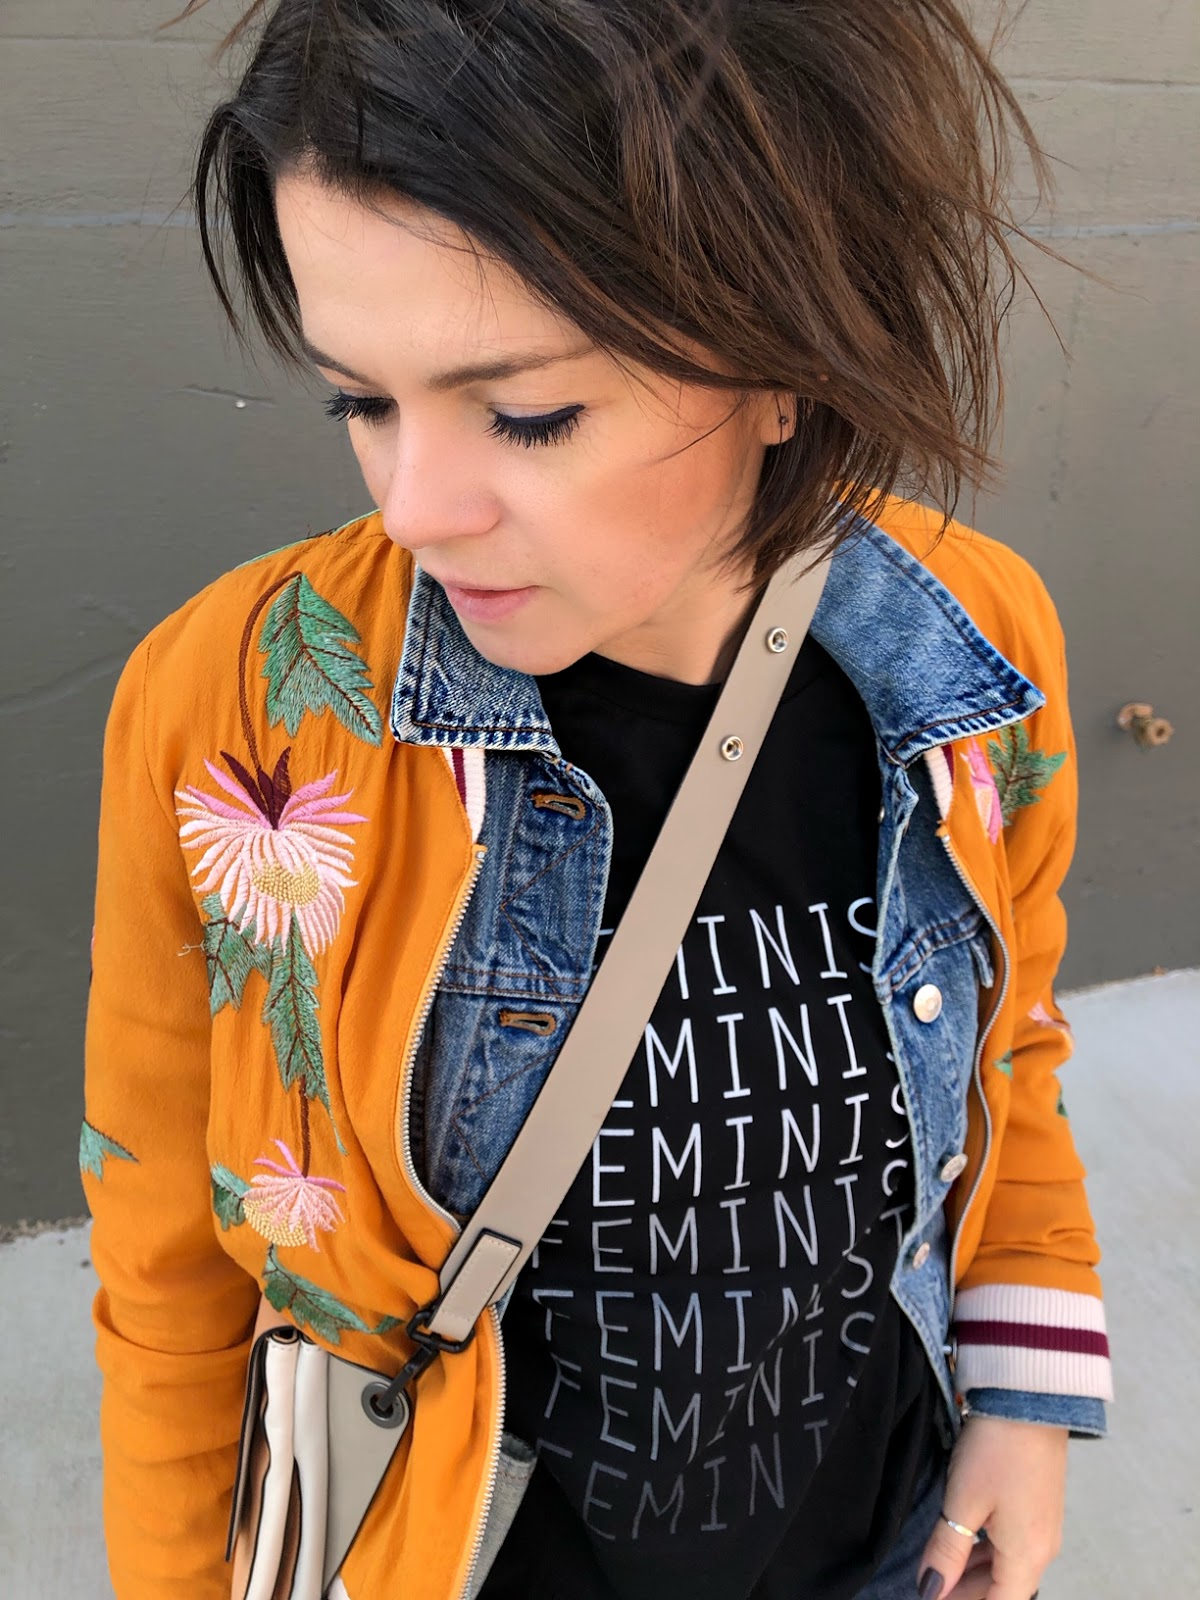 wearing a denim jacket and an orange embroidered bomber jacket